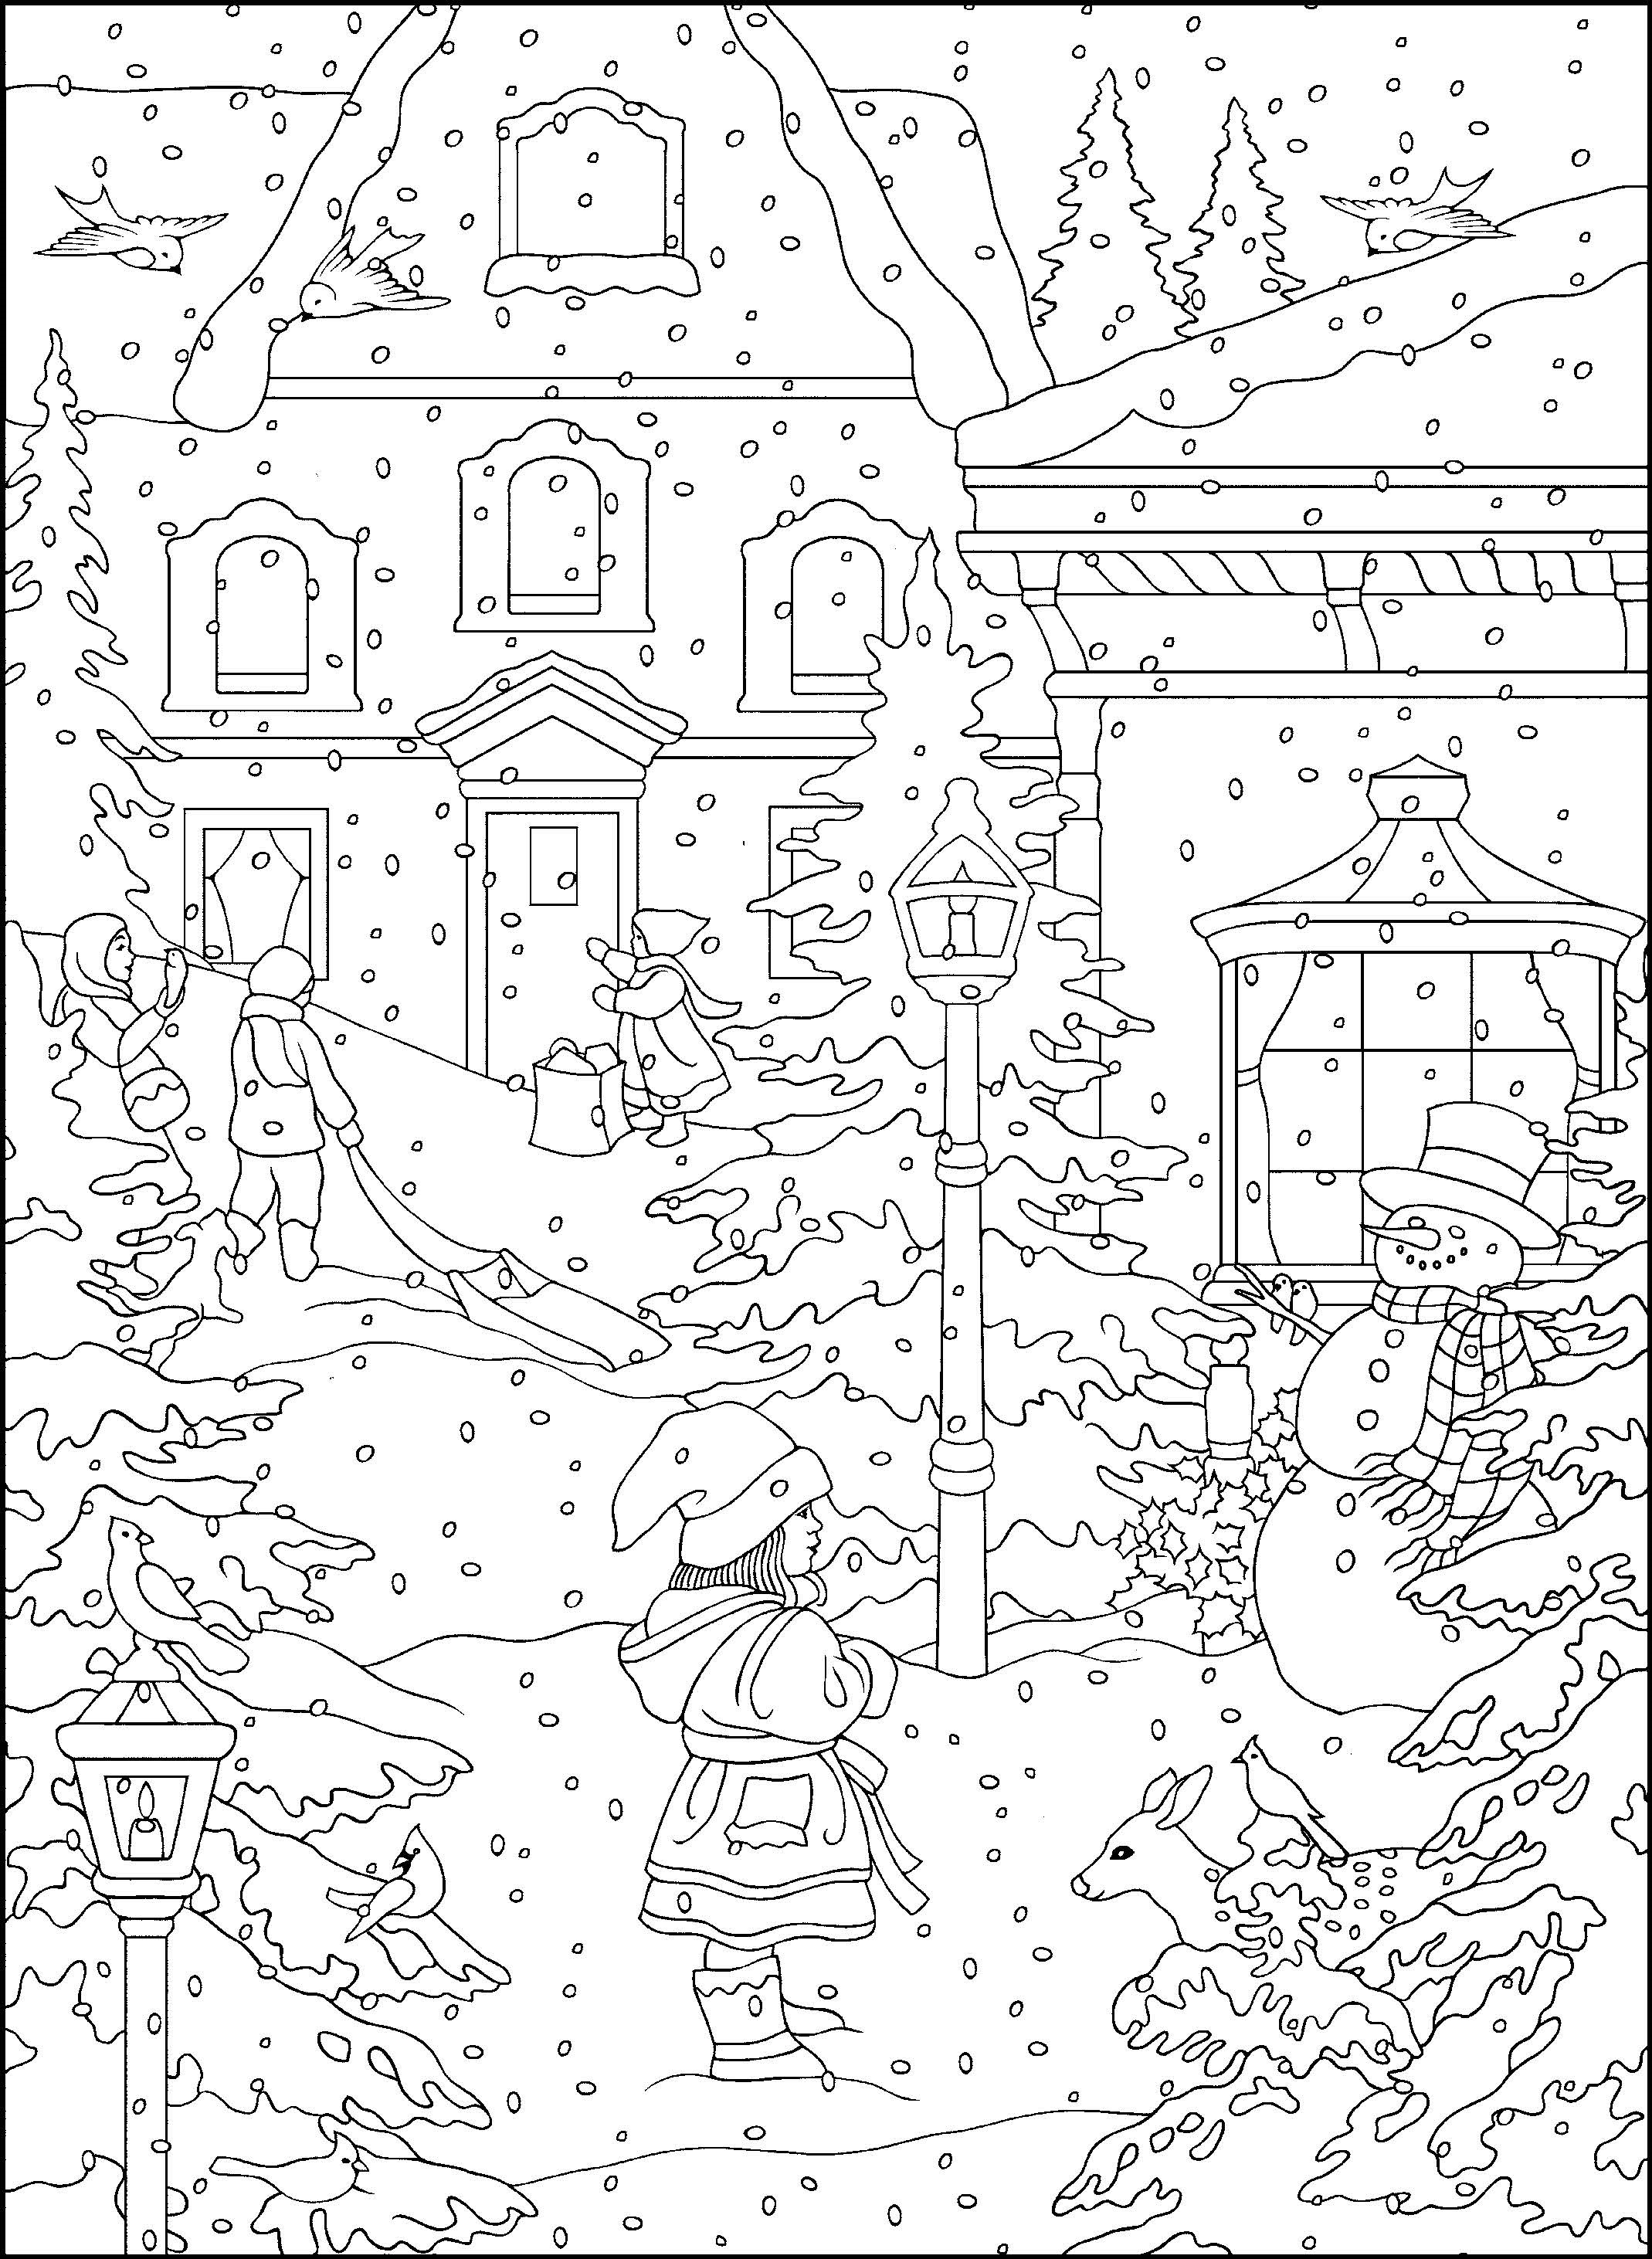 coloring with instructions best 101 following directions images on pinterest coloring instructions with